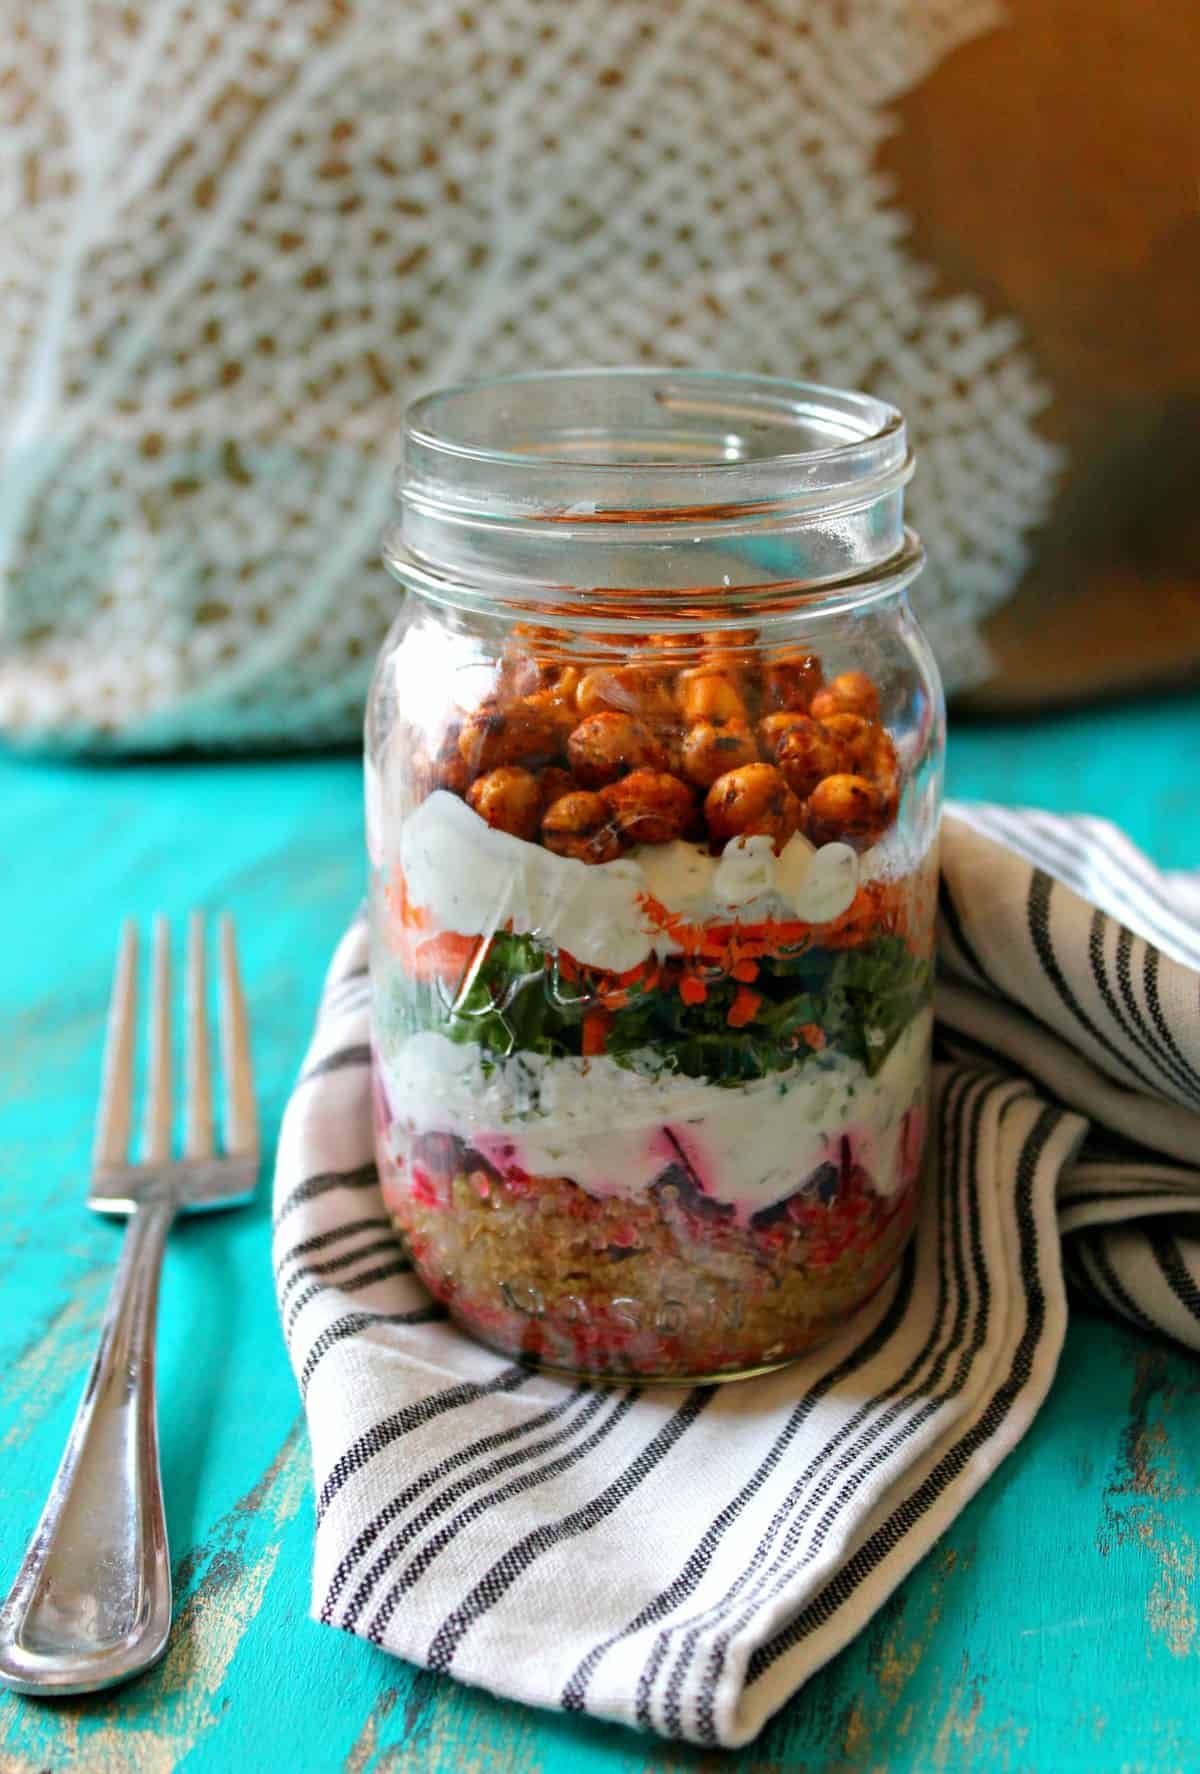 Savory Yogurt Parfaits! Whether you're on the go or simply need a moment to savor a nutritious bite, this layered snack will hit the spot. Quinoa, beets, kale and carrots are divided by a cool, creamy yogurt and cucumber sauce and topped off with flavorful roasted chickpeas for some crunch!